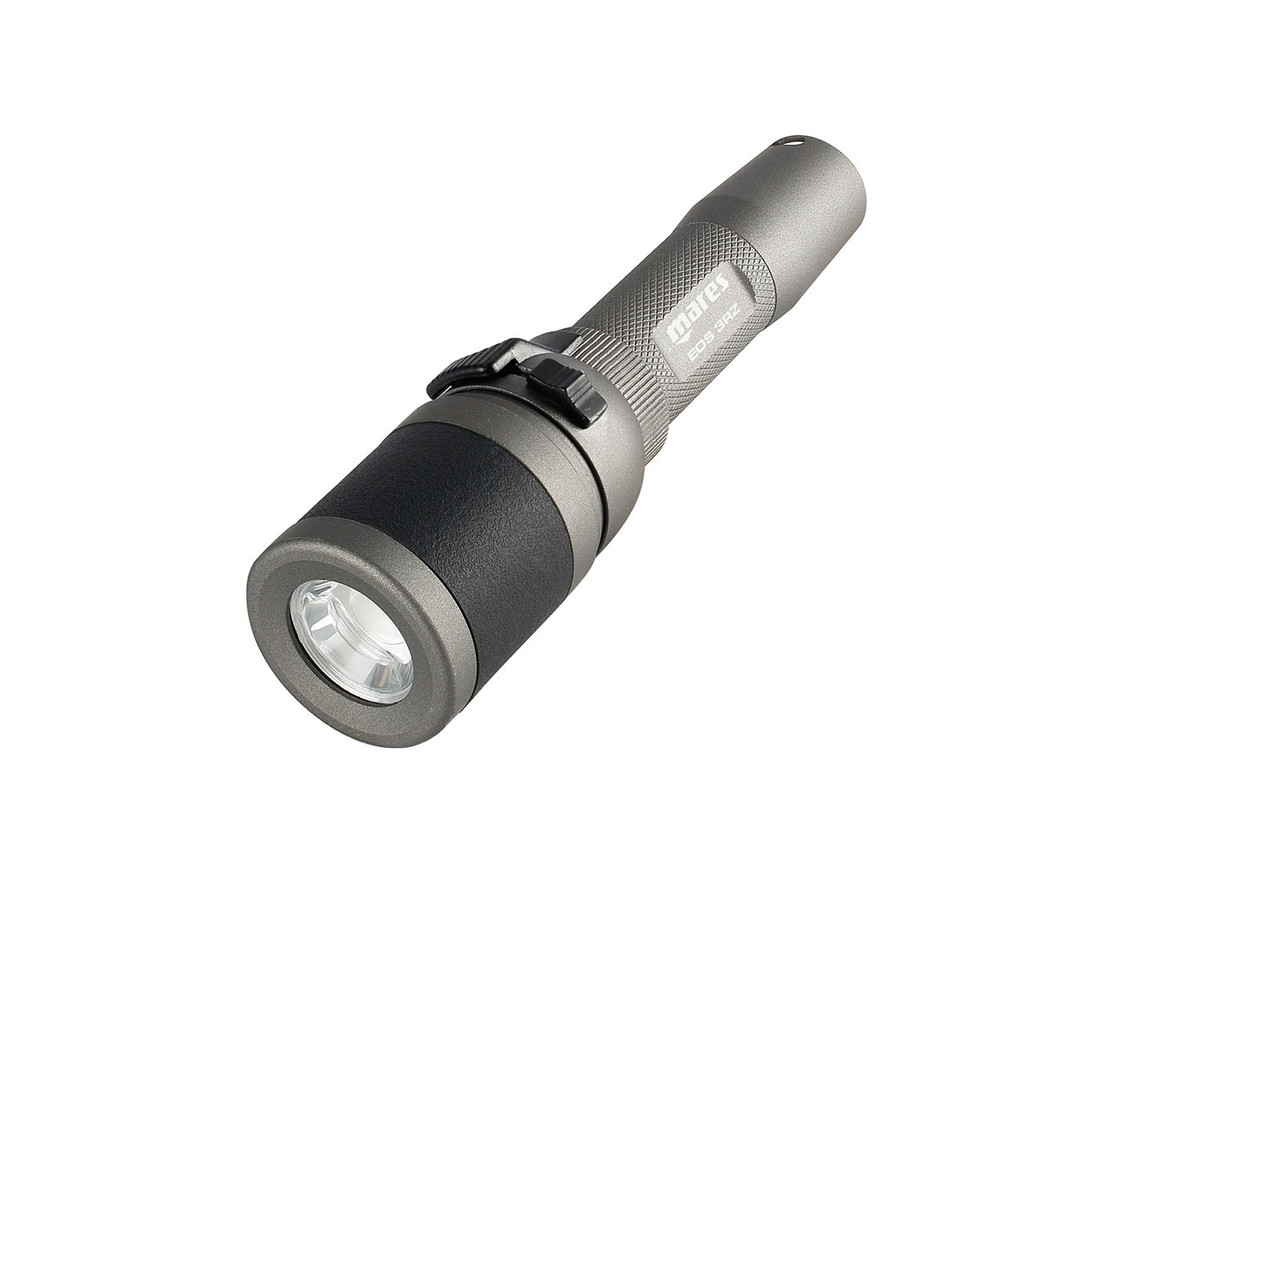 Mares EOS 3RZ Torch 320 Lumens LED Light Scuba Free Diving Dive Spear Fishing